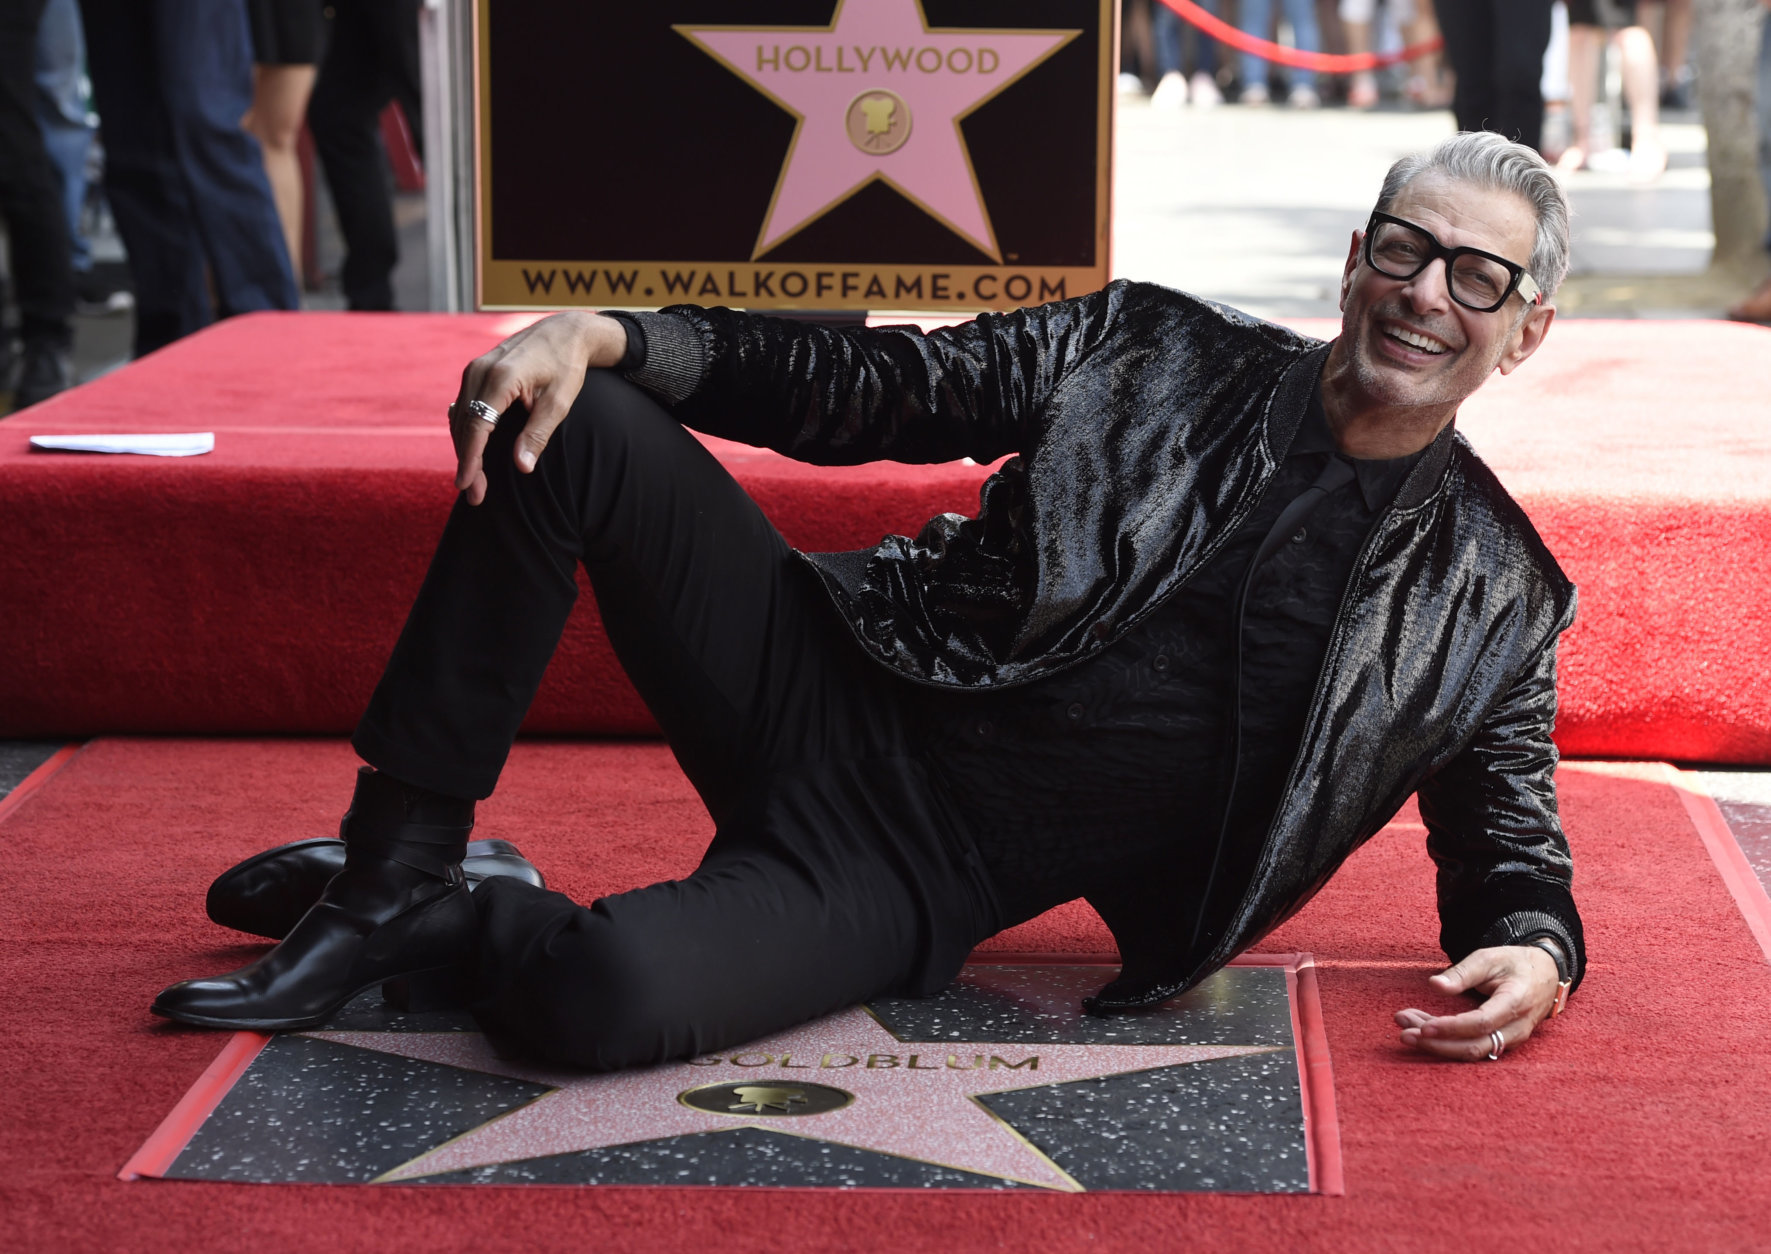 """Actor Jeff Goldblum, best known for his roles in """"The Fly,"""" """"Independence Day"""" and """"Jurassic Park, poses atop his star on the Hollywood Walk of Fame following a ceremony in his honor on Thursday, June 14, 2018, in Los Angeles. (Photo by Chris Pizzello/Invision/AP)"""